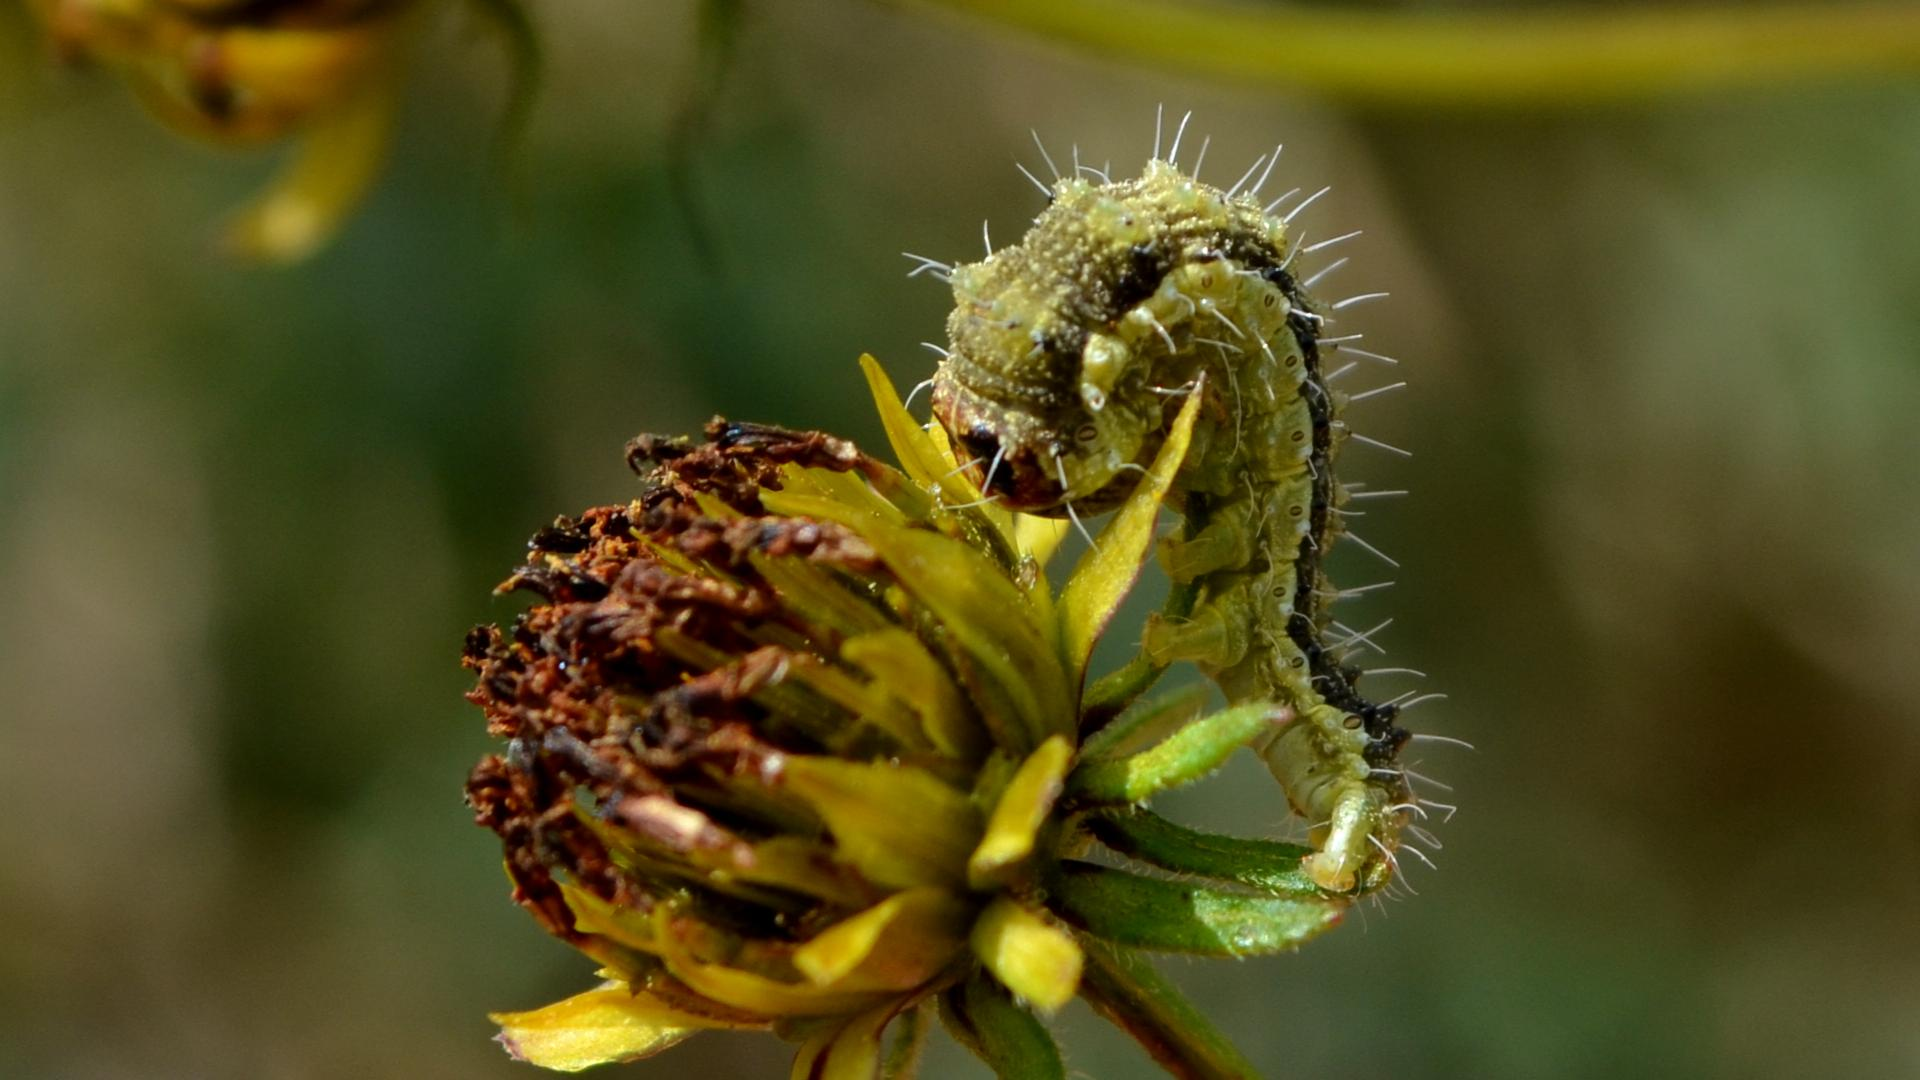 helicoverpa caterpillar